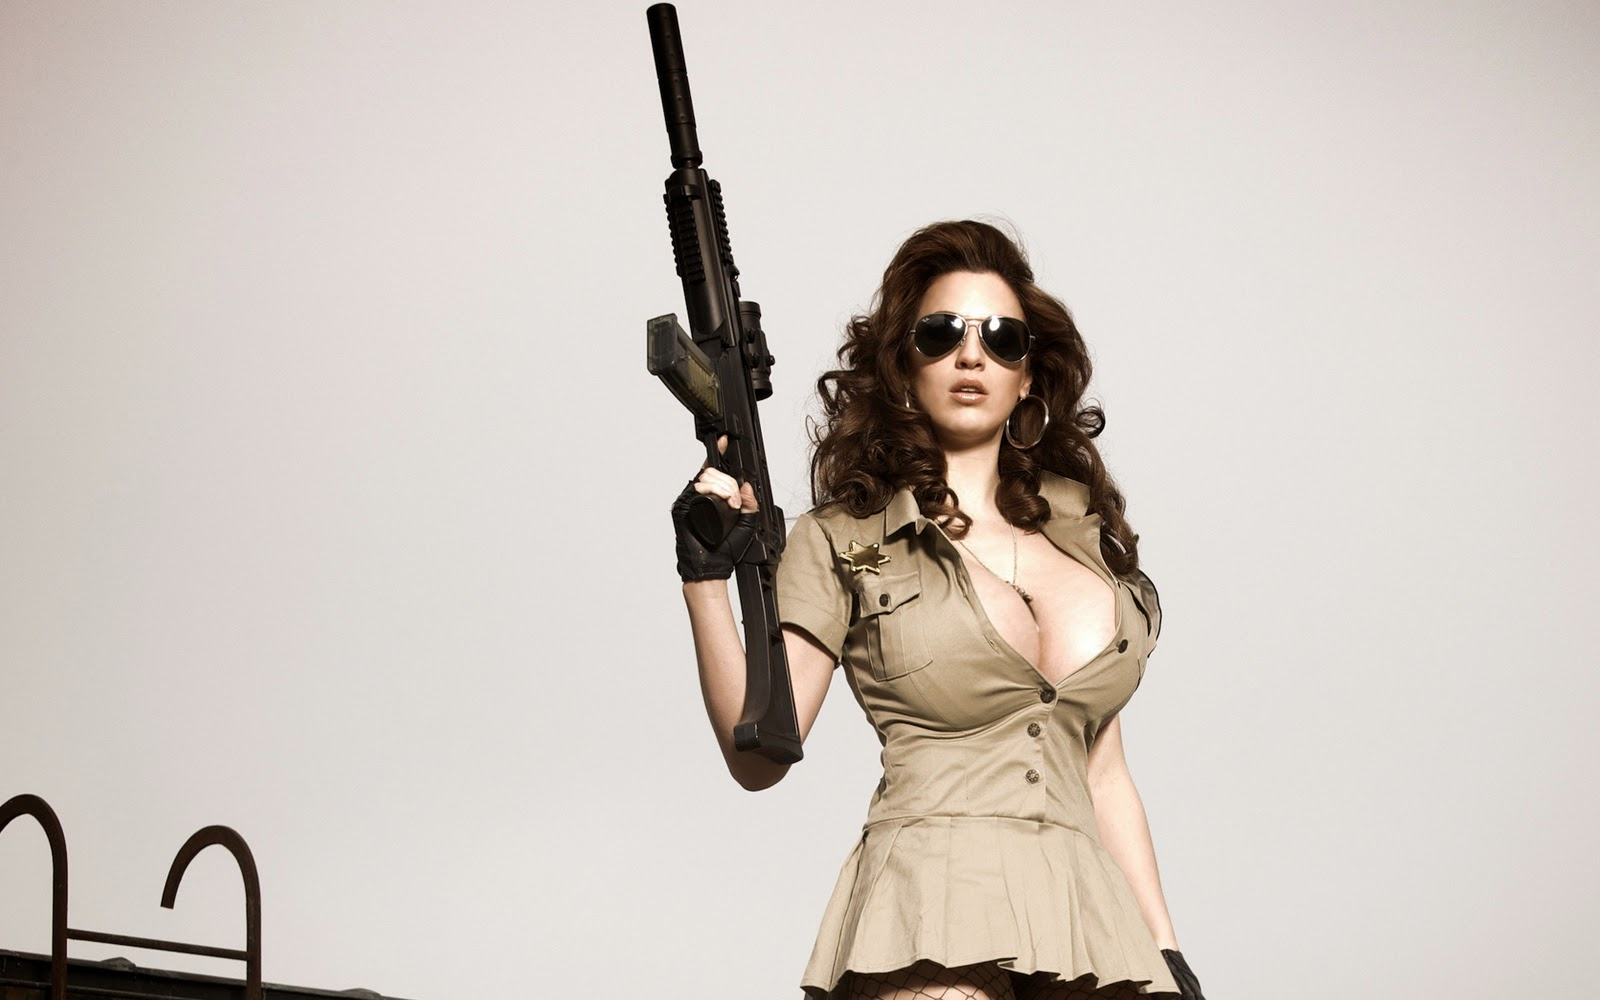 http://4.bp.blogspot.com/-pz3EwnJUnrU/TueAUvY-6MI/AAAAAAAAHkE/JH1fb94LpXc/s1600/military+babe+super+cleavage+holding+assault+rifle+hd+wallpaper.jpg